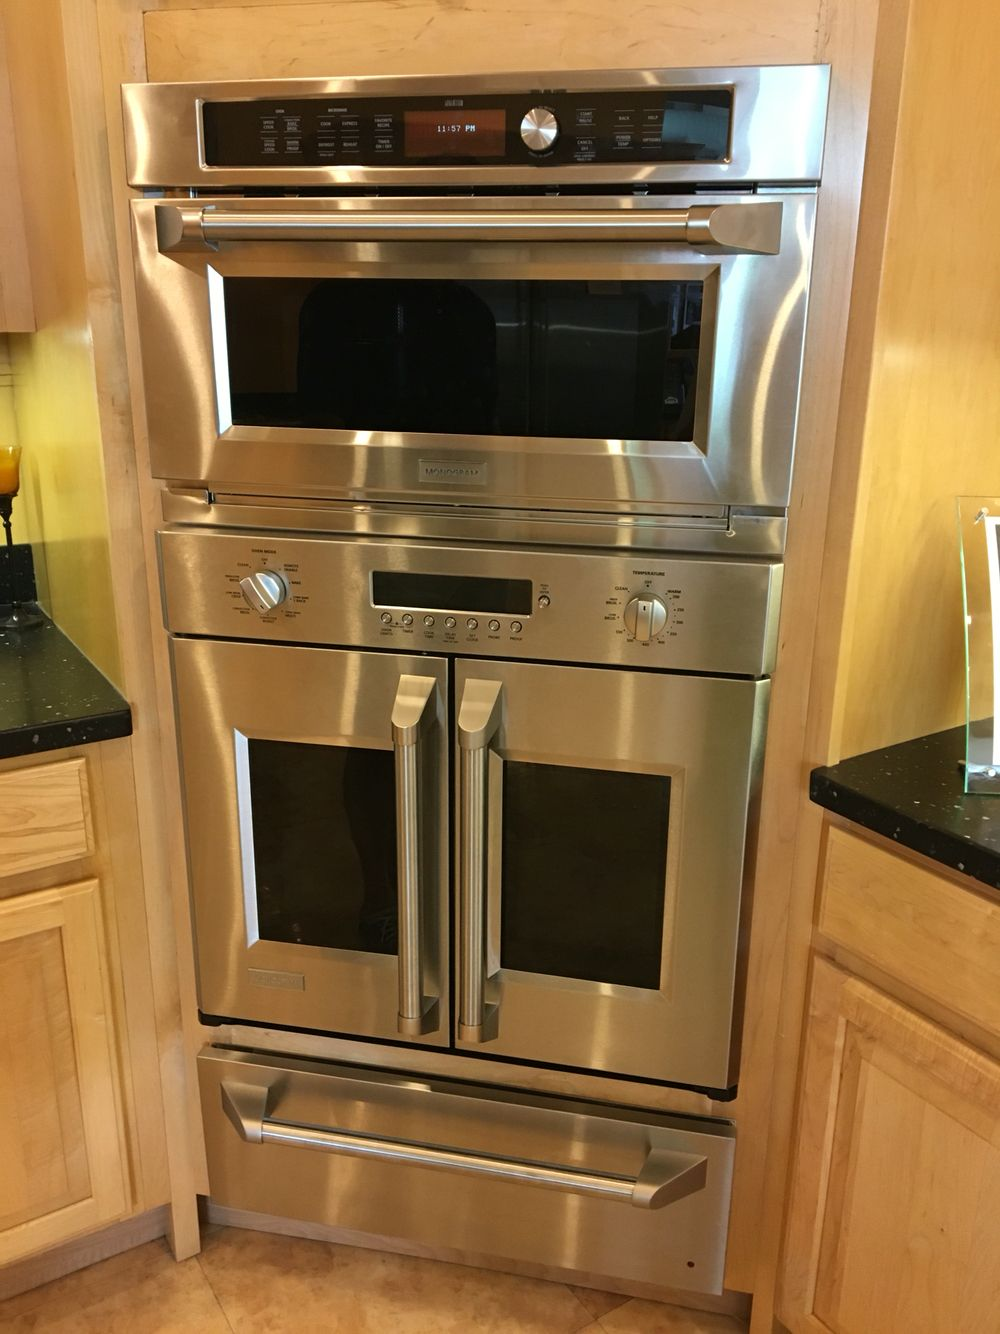 For Our Next Kitchen Combo Conv Microwave French Door Oven And